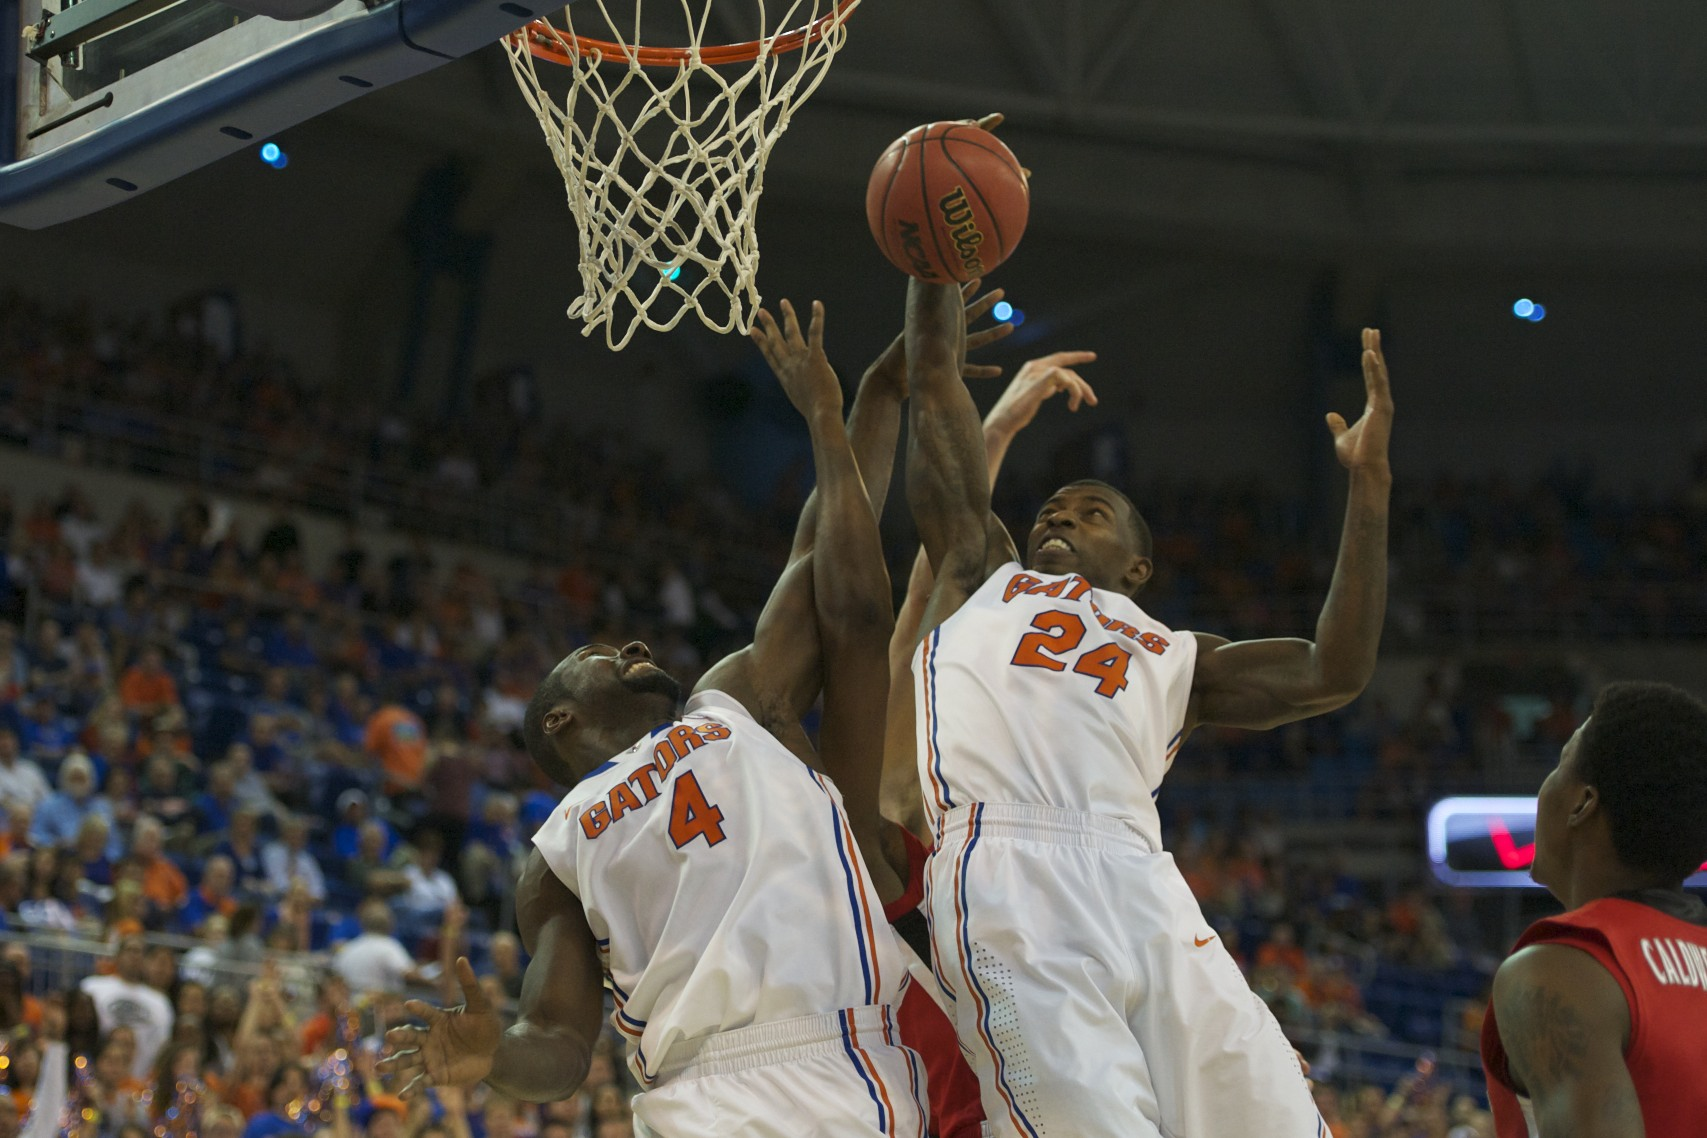 Patric Young (4) and Casey Prather (24) fight for a Florida rebound in the first half of Wednesday night's game.